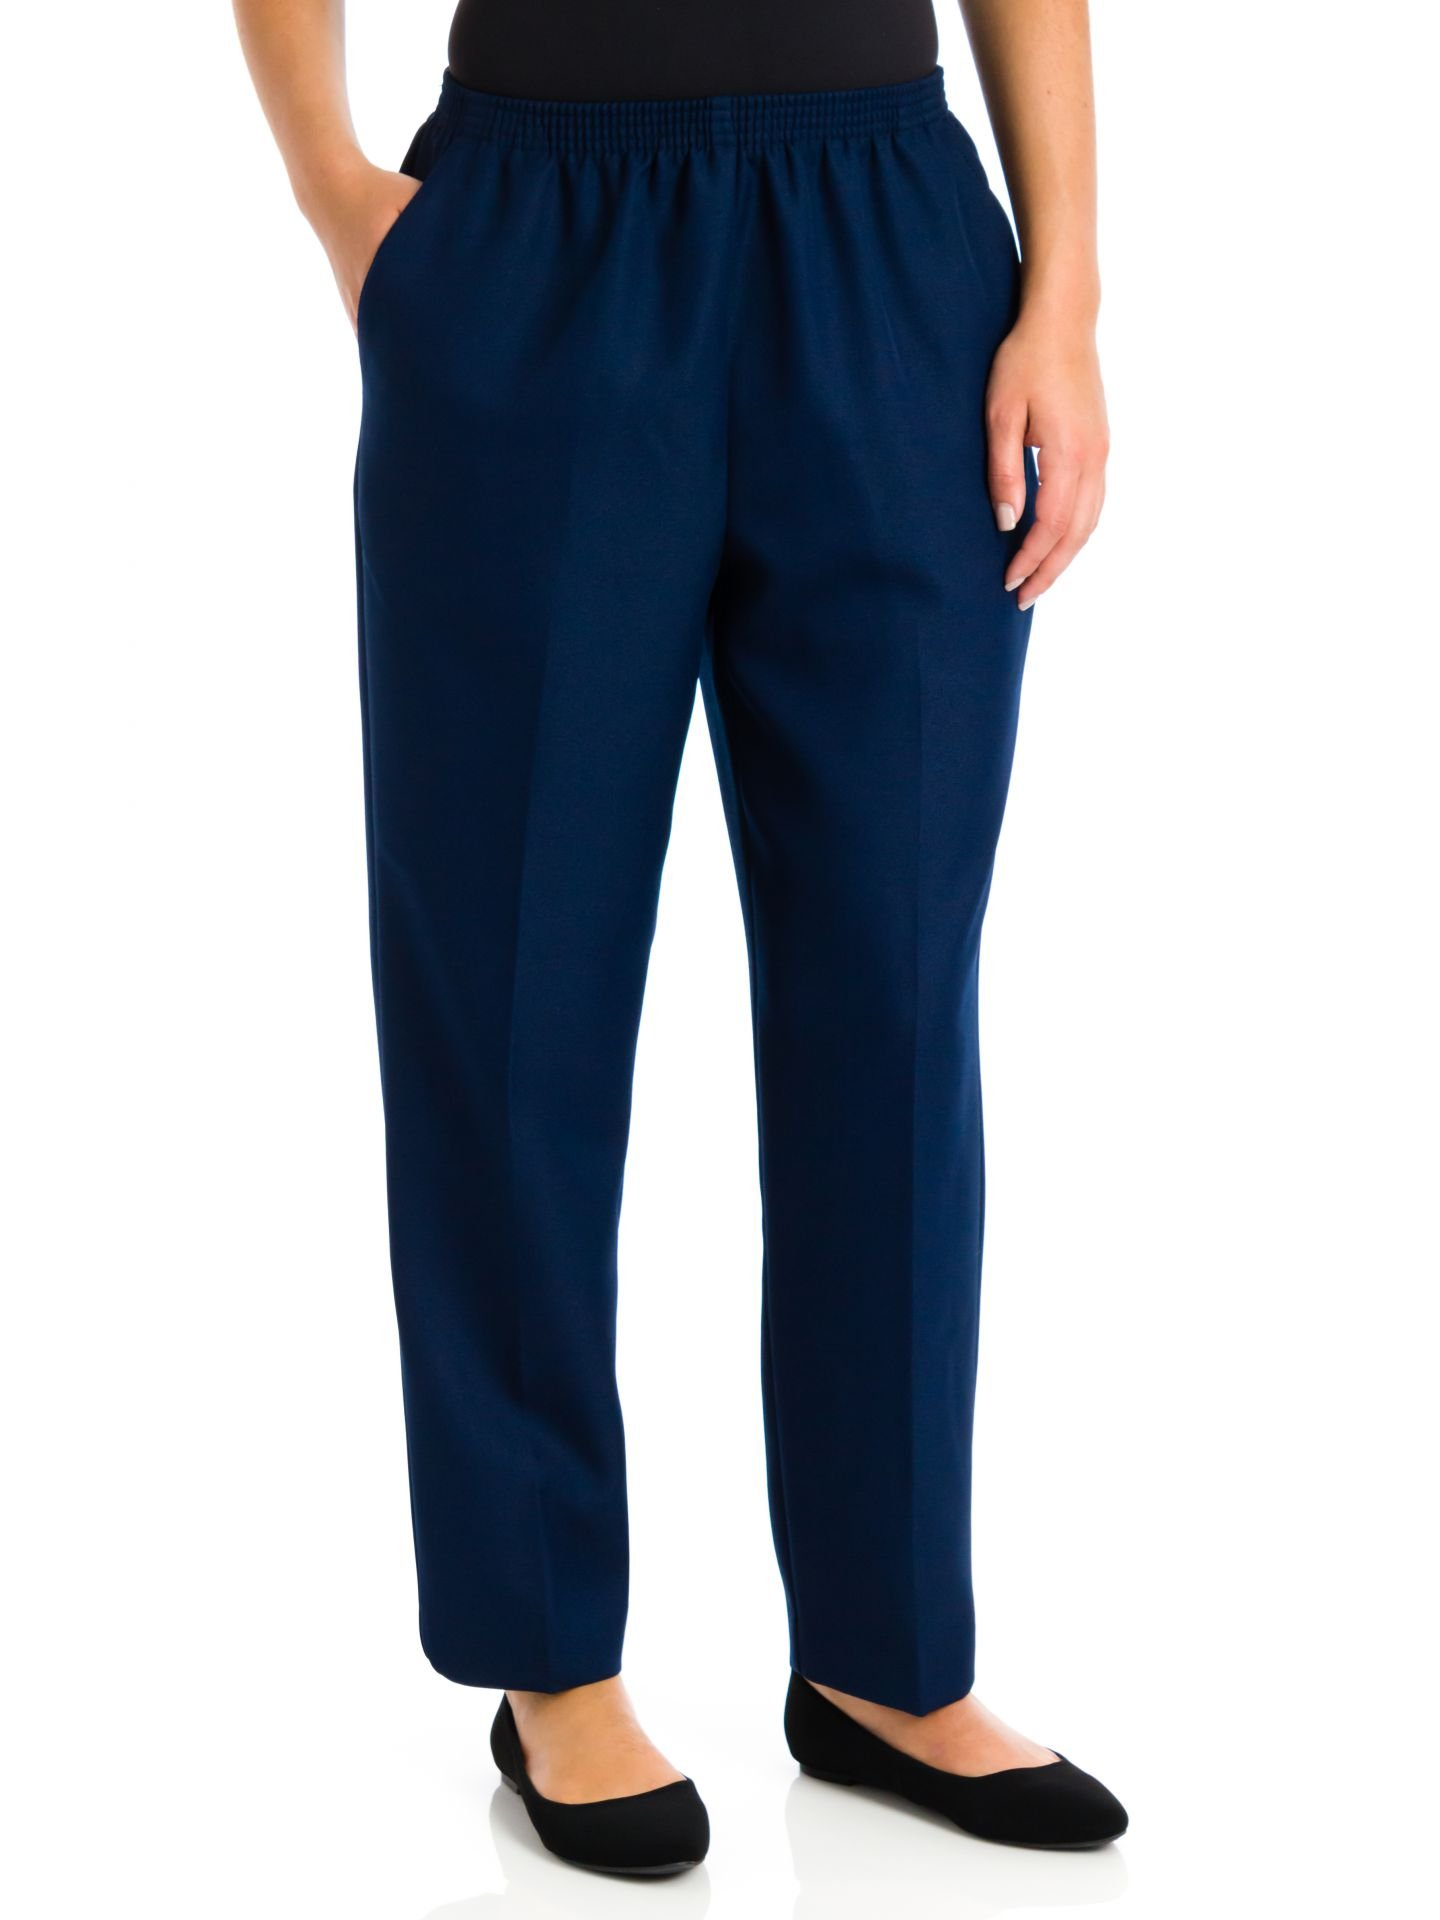 Alfred Dunner Classic Pull-On Pant Navy 18W Short